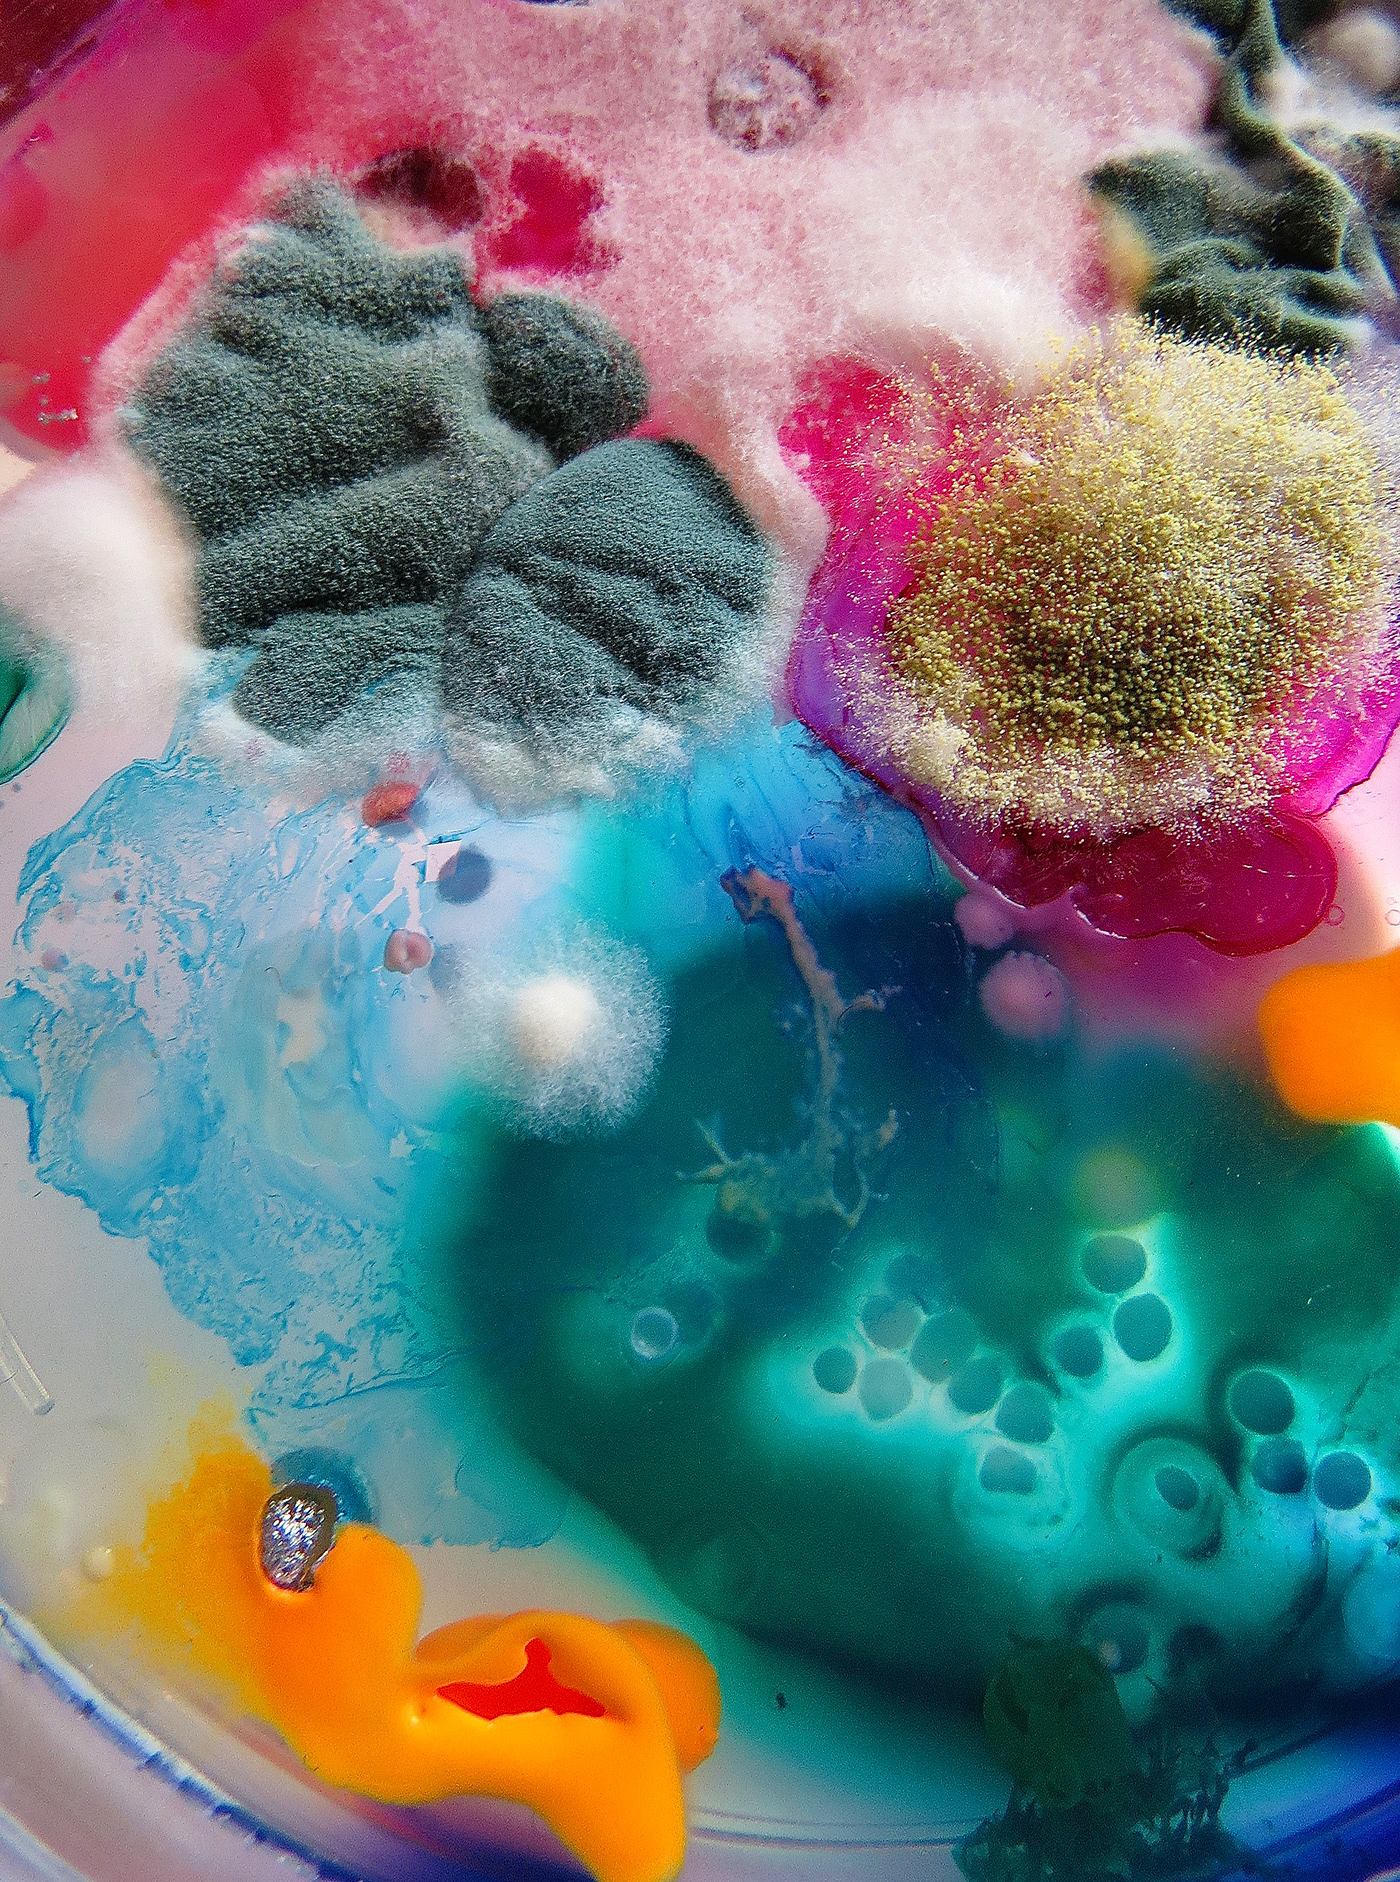 abstraction alternative art background Bacteria bio biology colorpalette   colours design FINEART inspiration laboratory light molds newmedia pattern shade texture